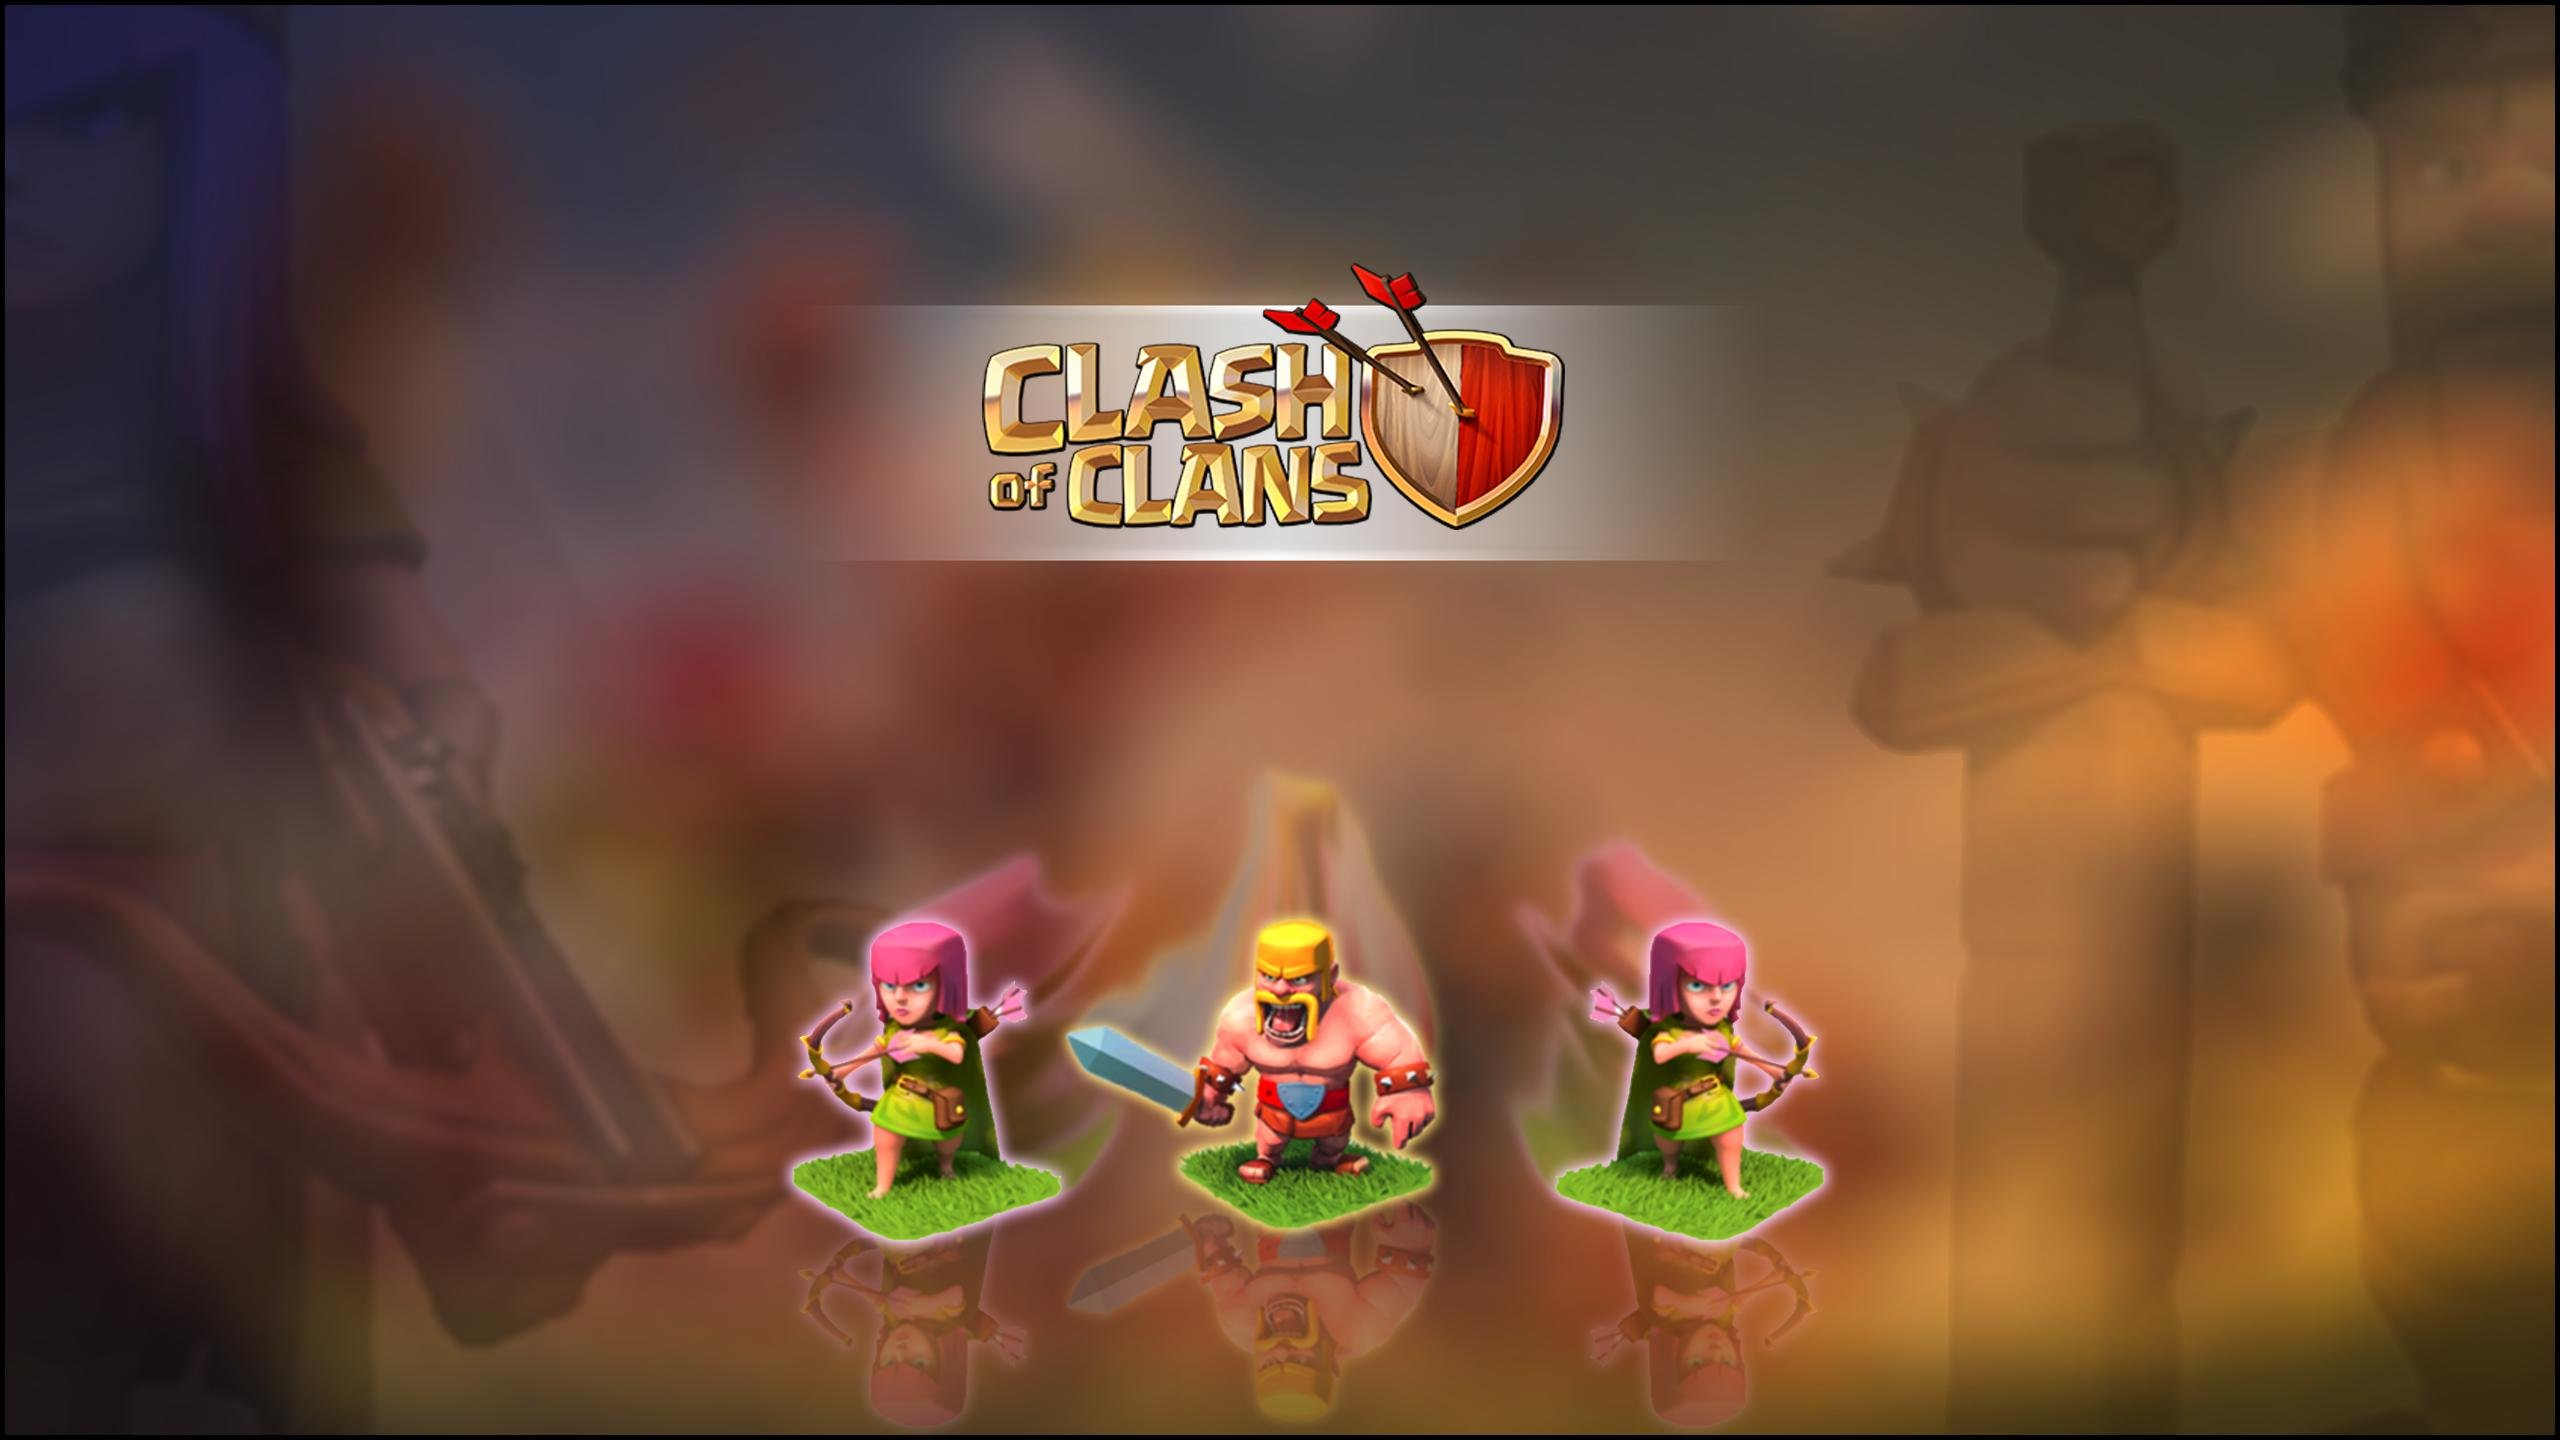 CLASH OF CLANS fantasy fighting family action adventure strategy 1clashclans warrior poster